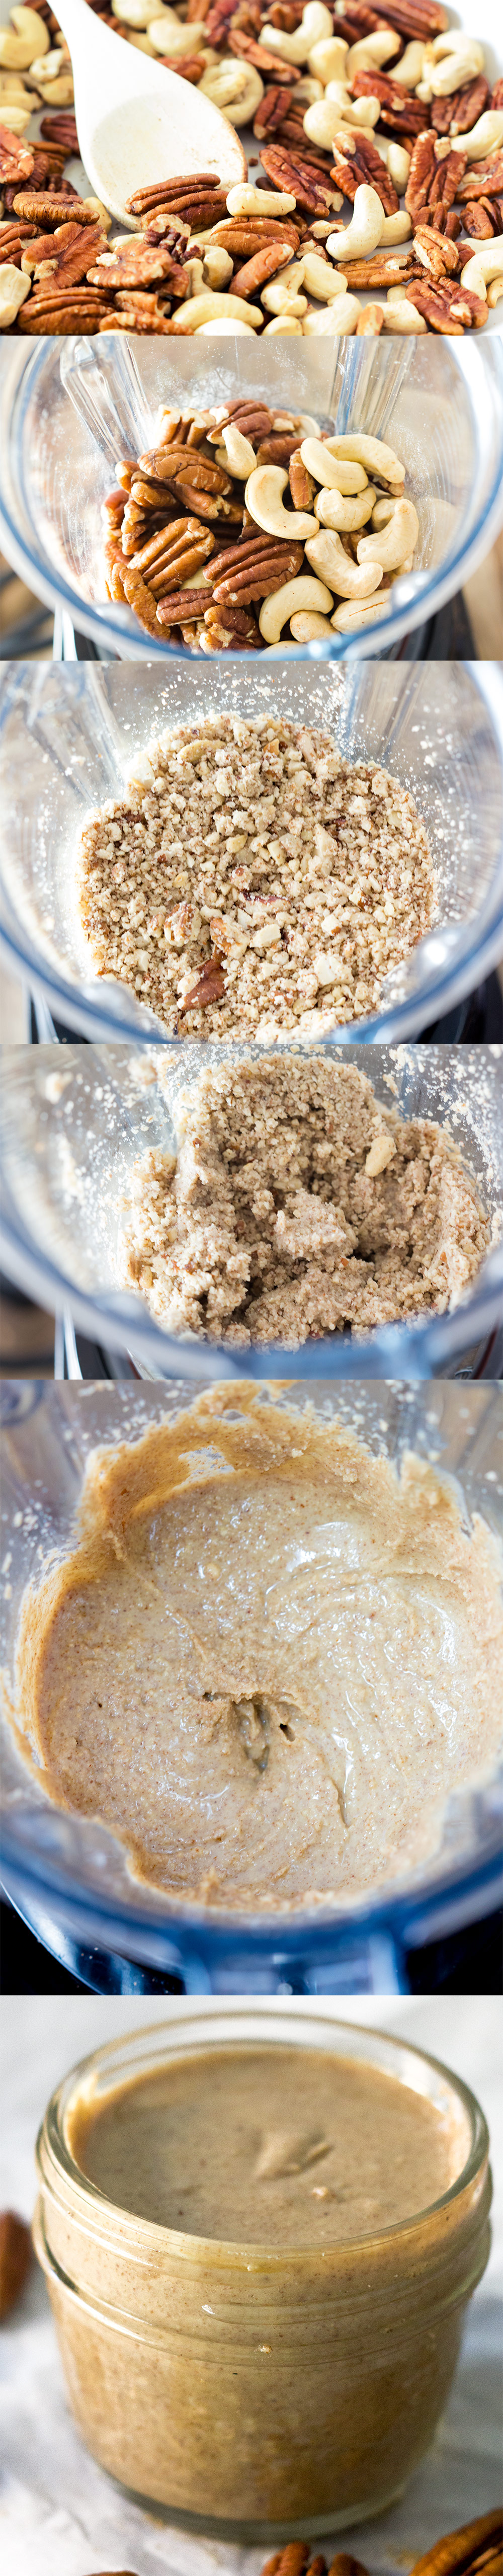 Easy Nut Butter